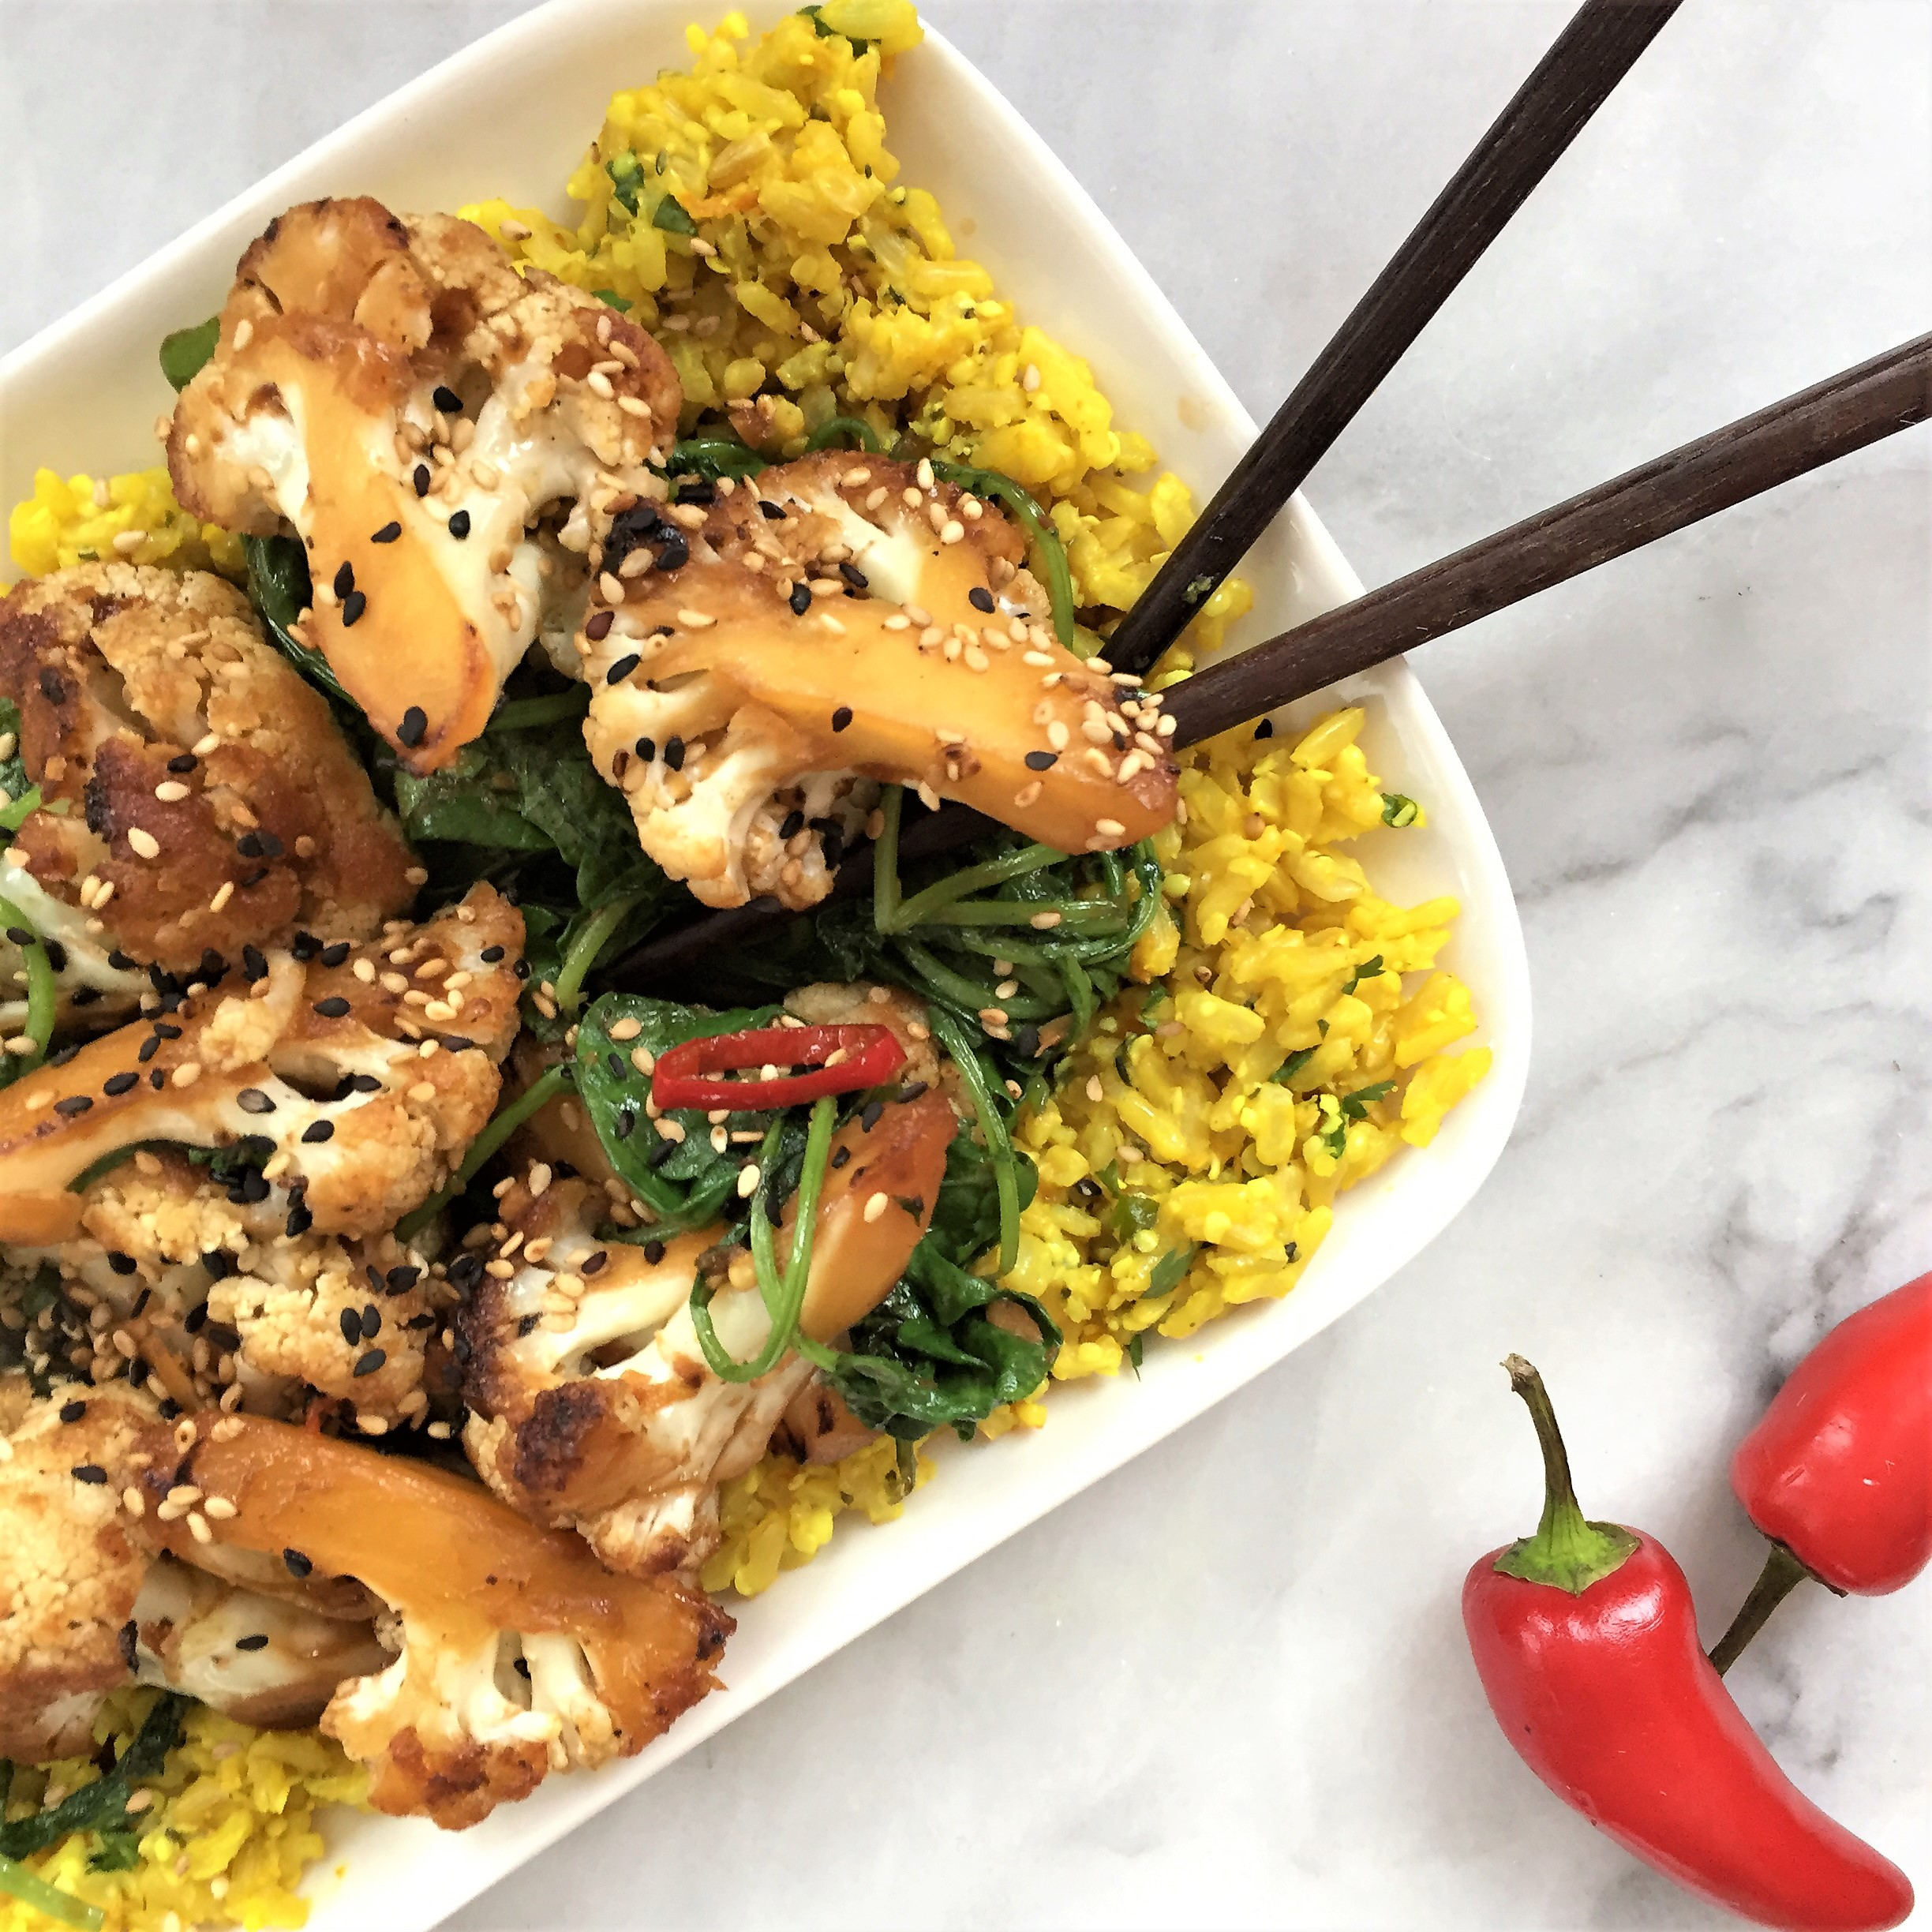 teriyaki cauliflower & kale stir-fry